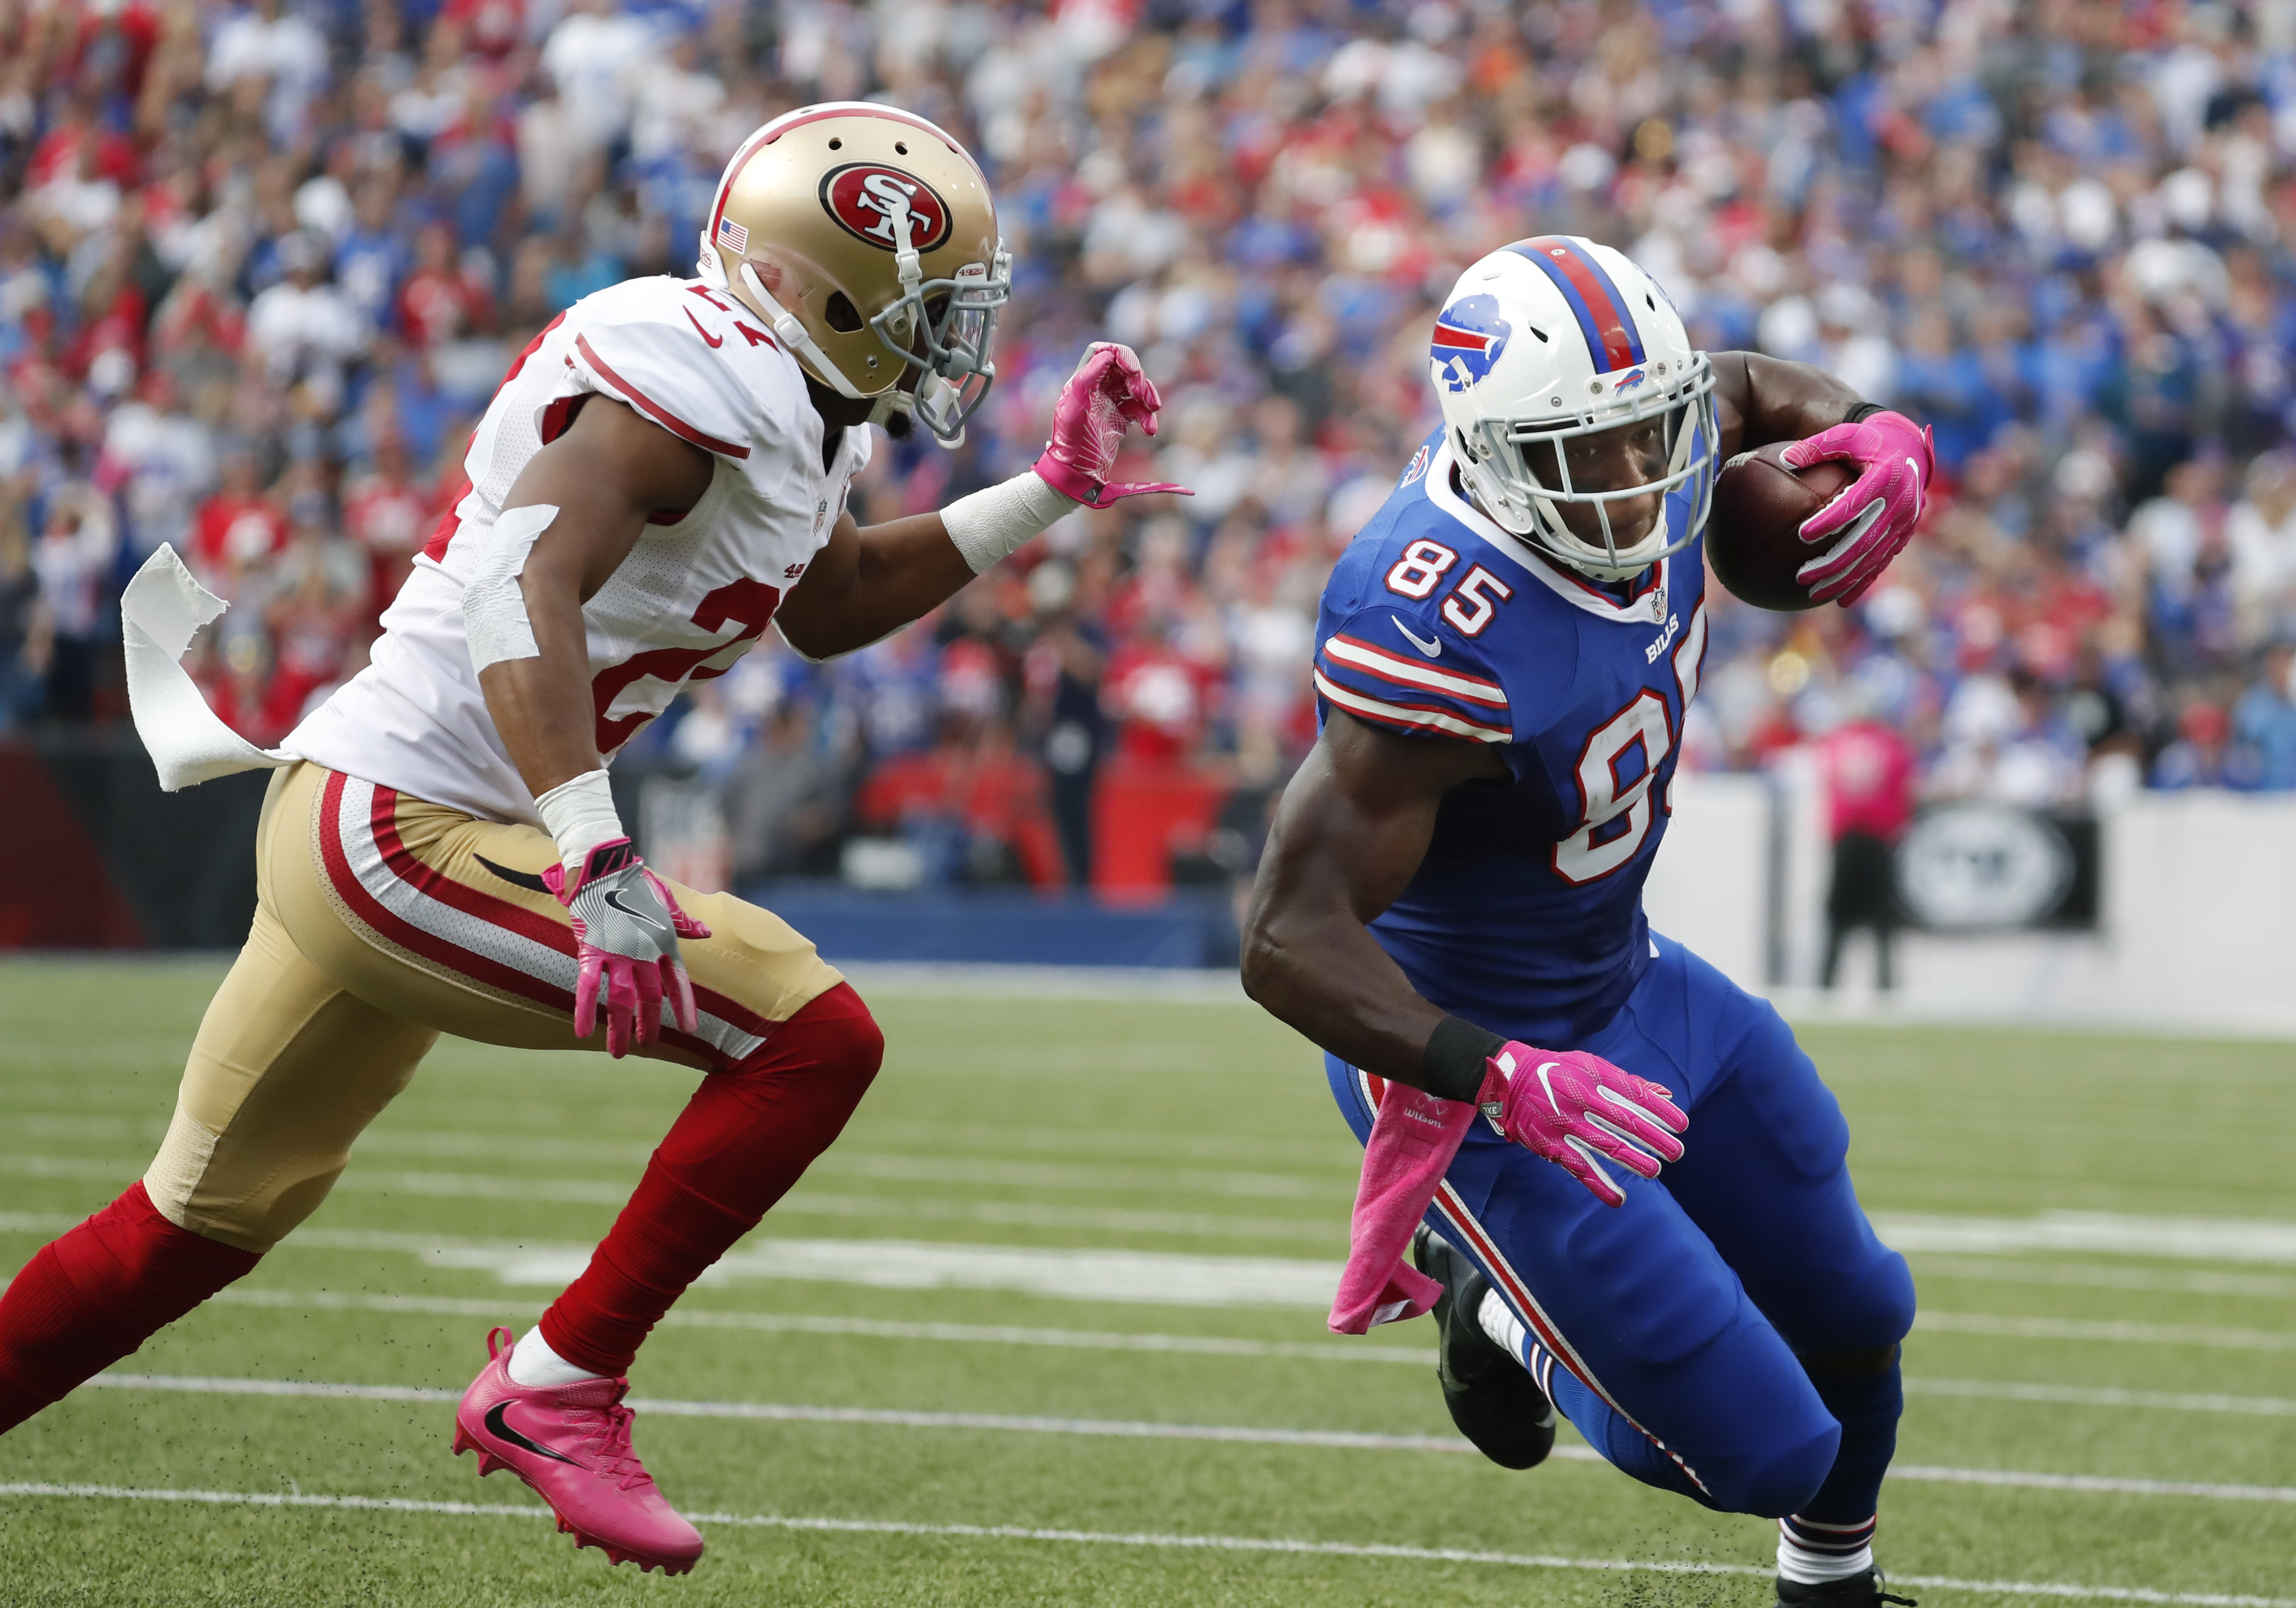 Buffalo Bills tight end Charles Clay (85) puts a move on San Francisco 49ers cornerback Keith Reaser (27) during the first quarter.  (Harry Scull Jr./Buffalo News)